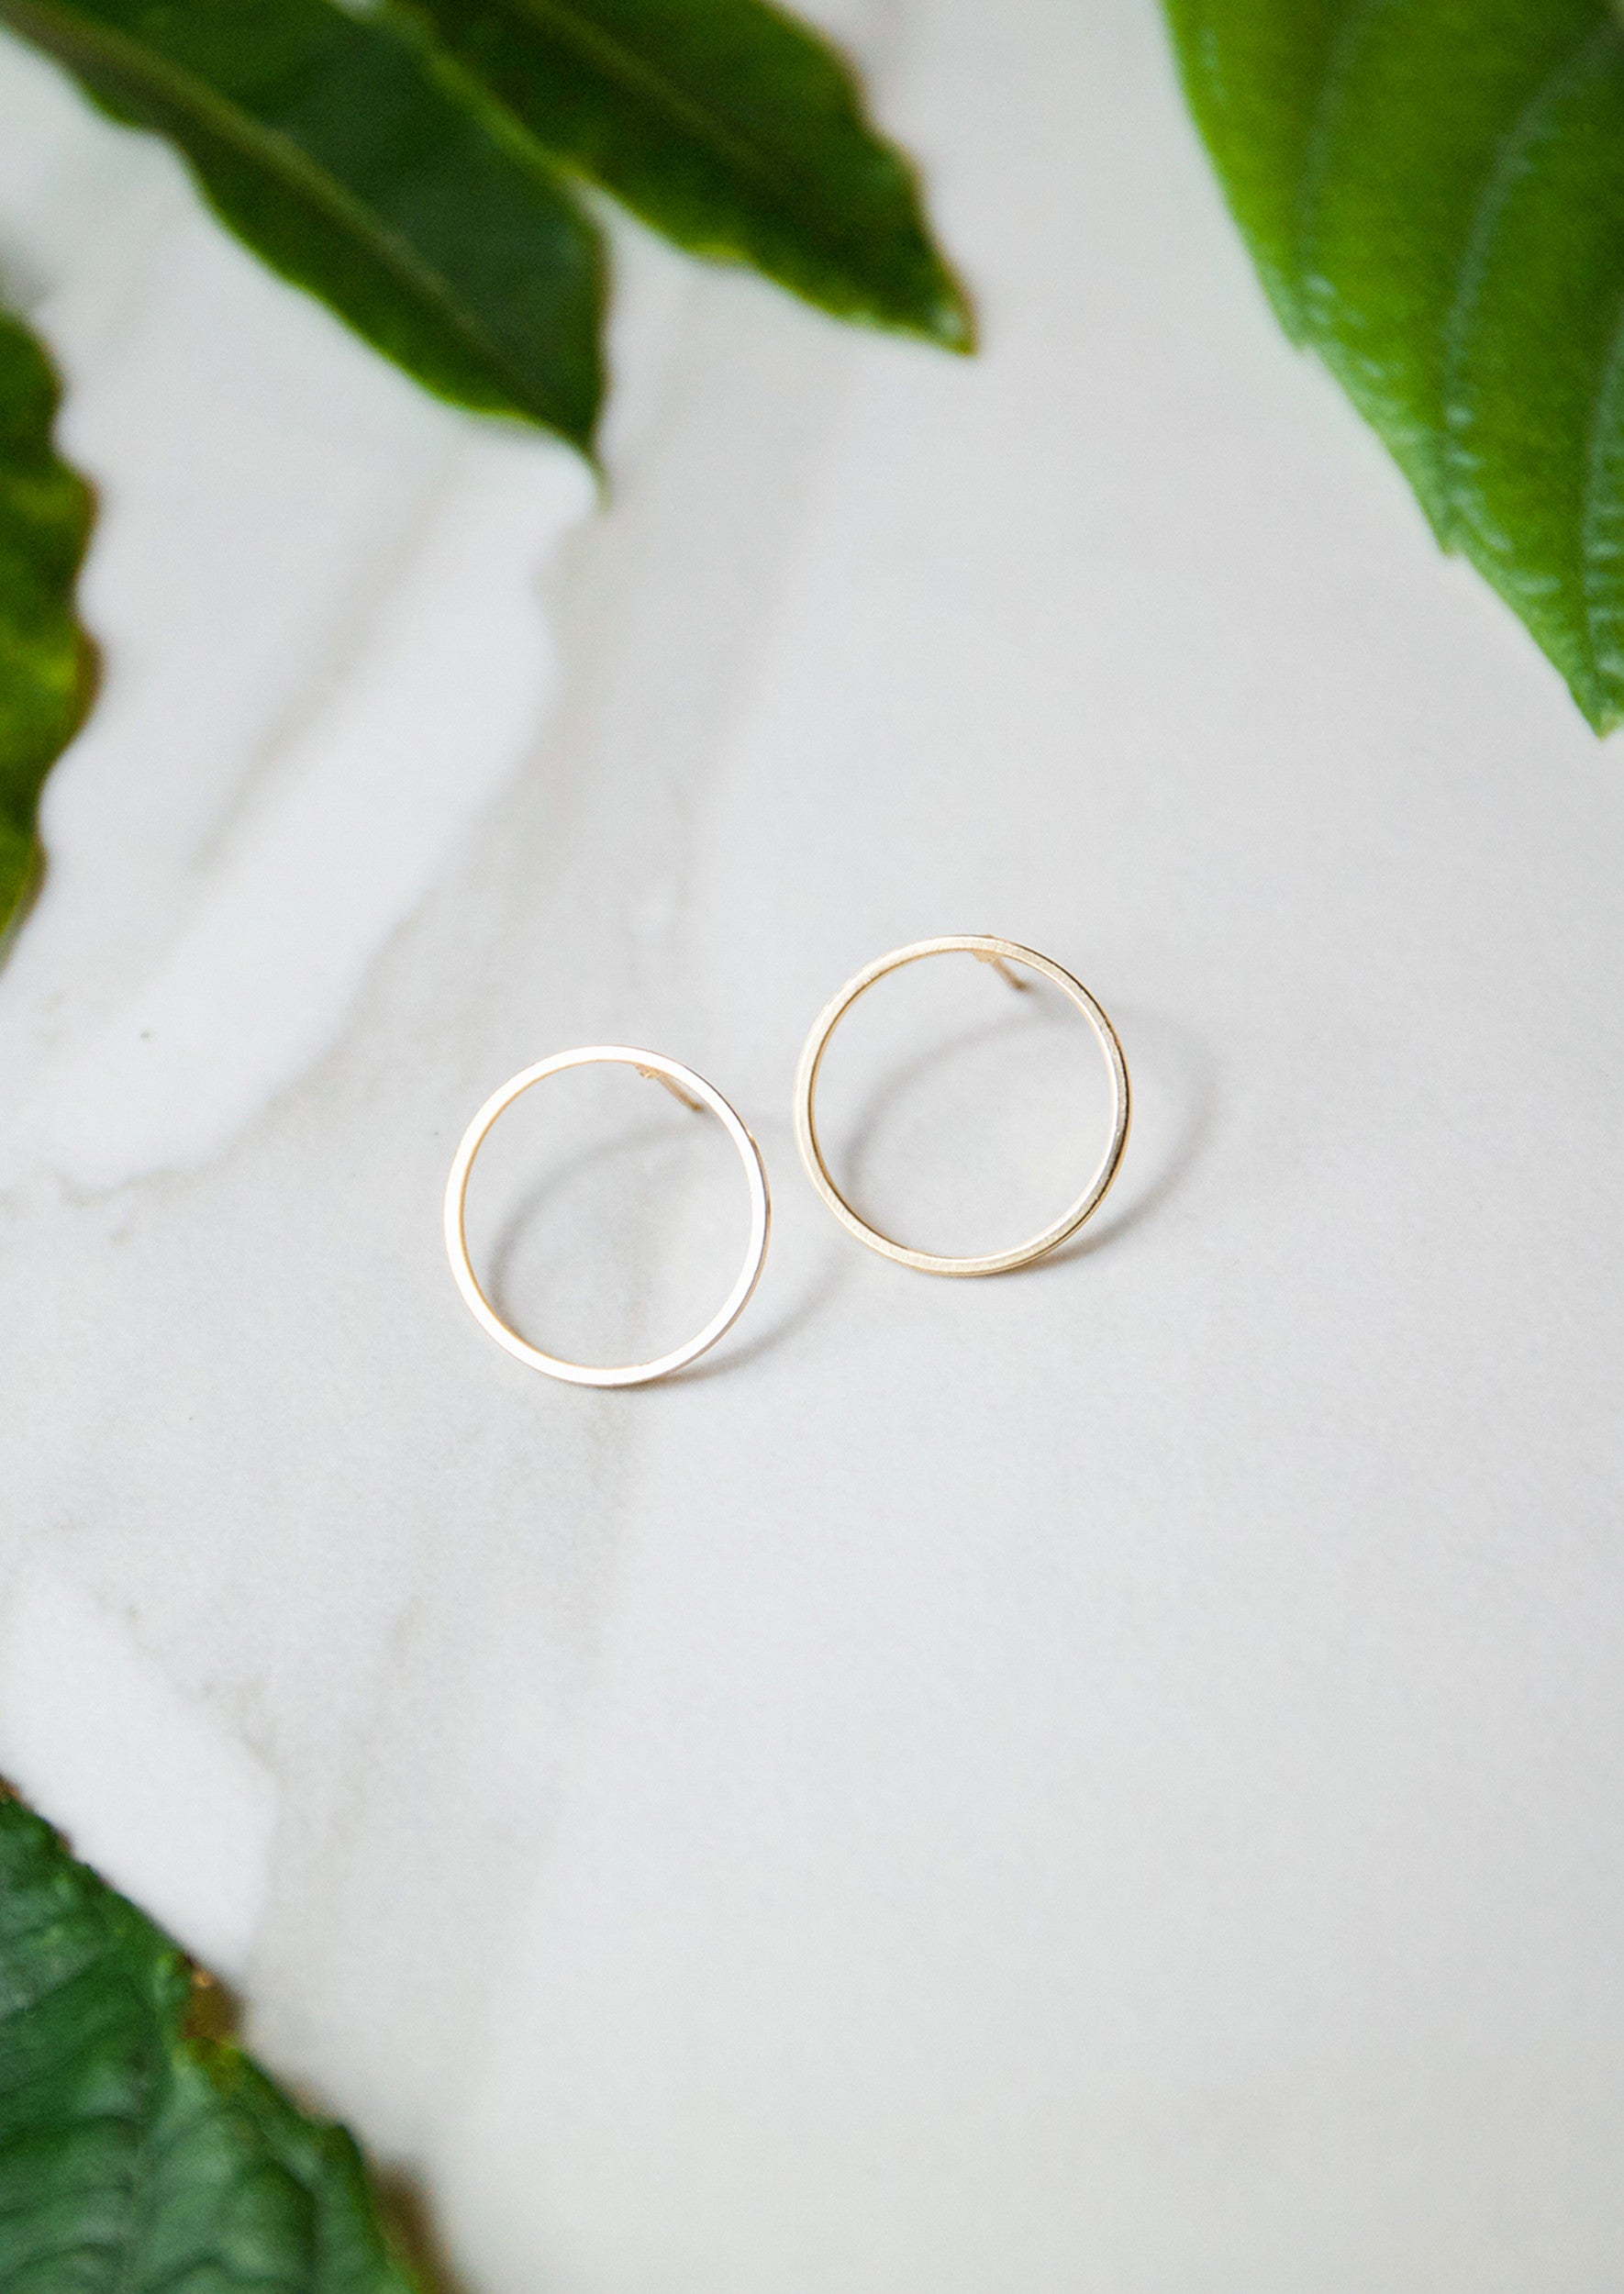 Jules Smith 14K Gold Plated Circle Stud Earrings